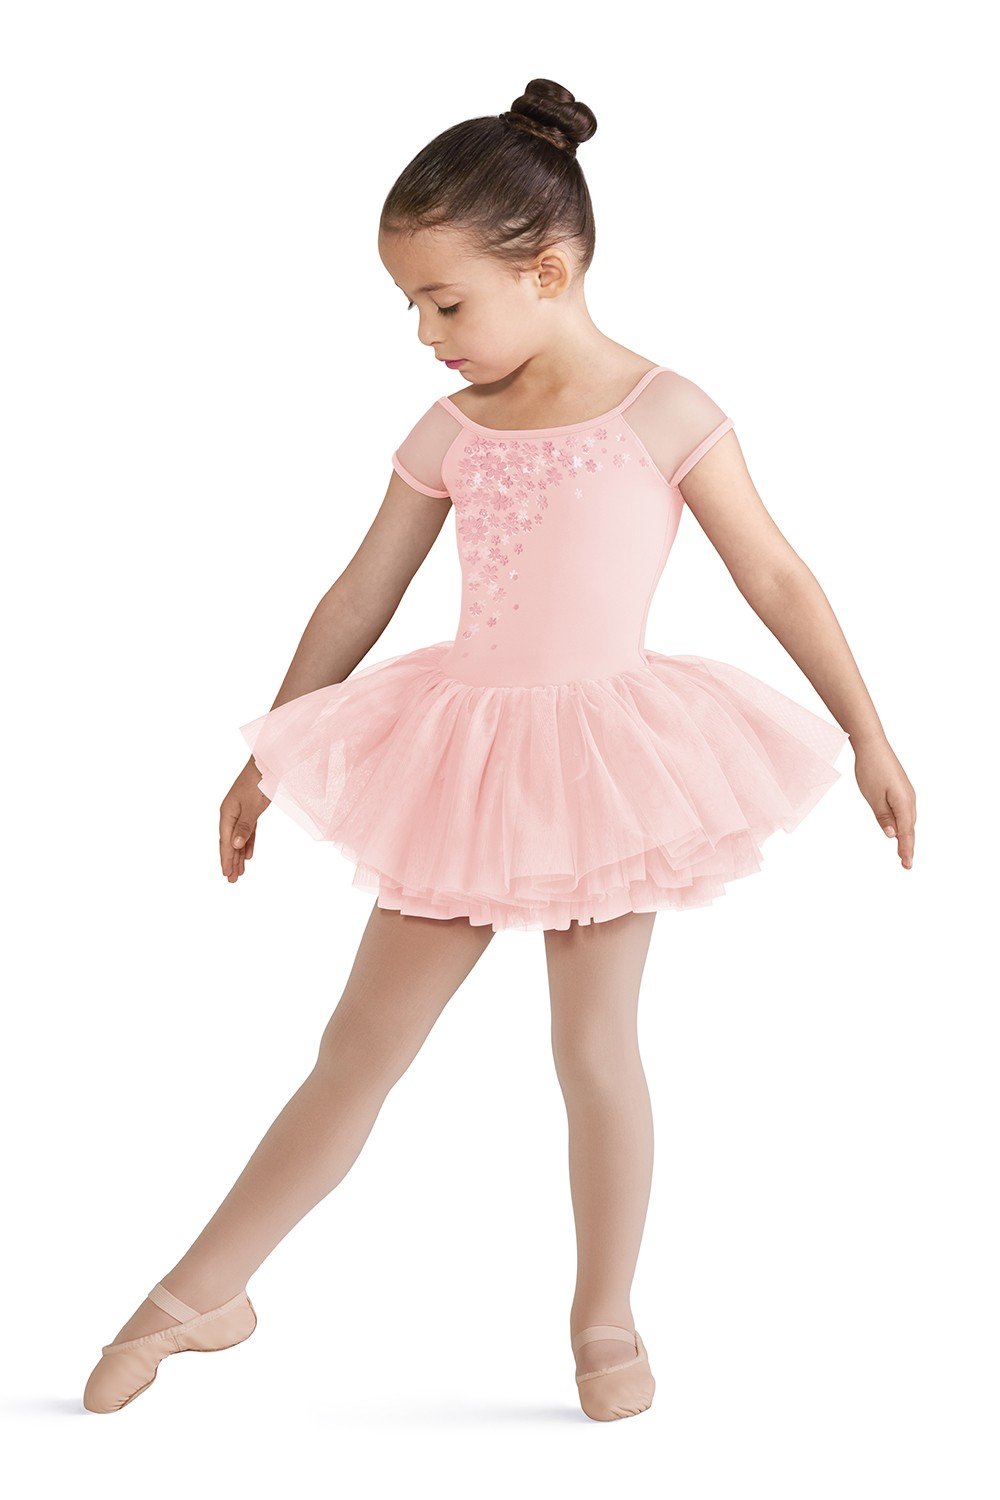 Abelle Children's Dance Leotards